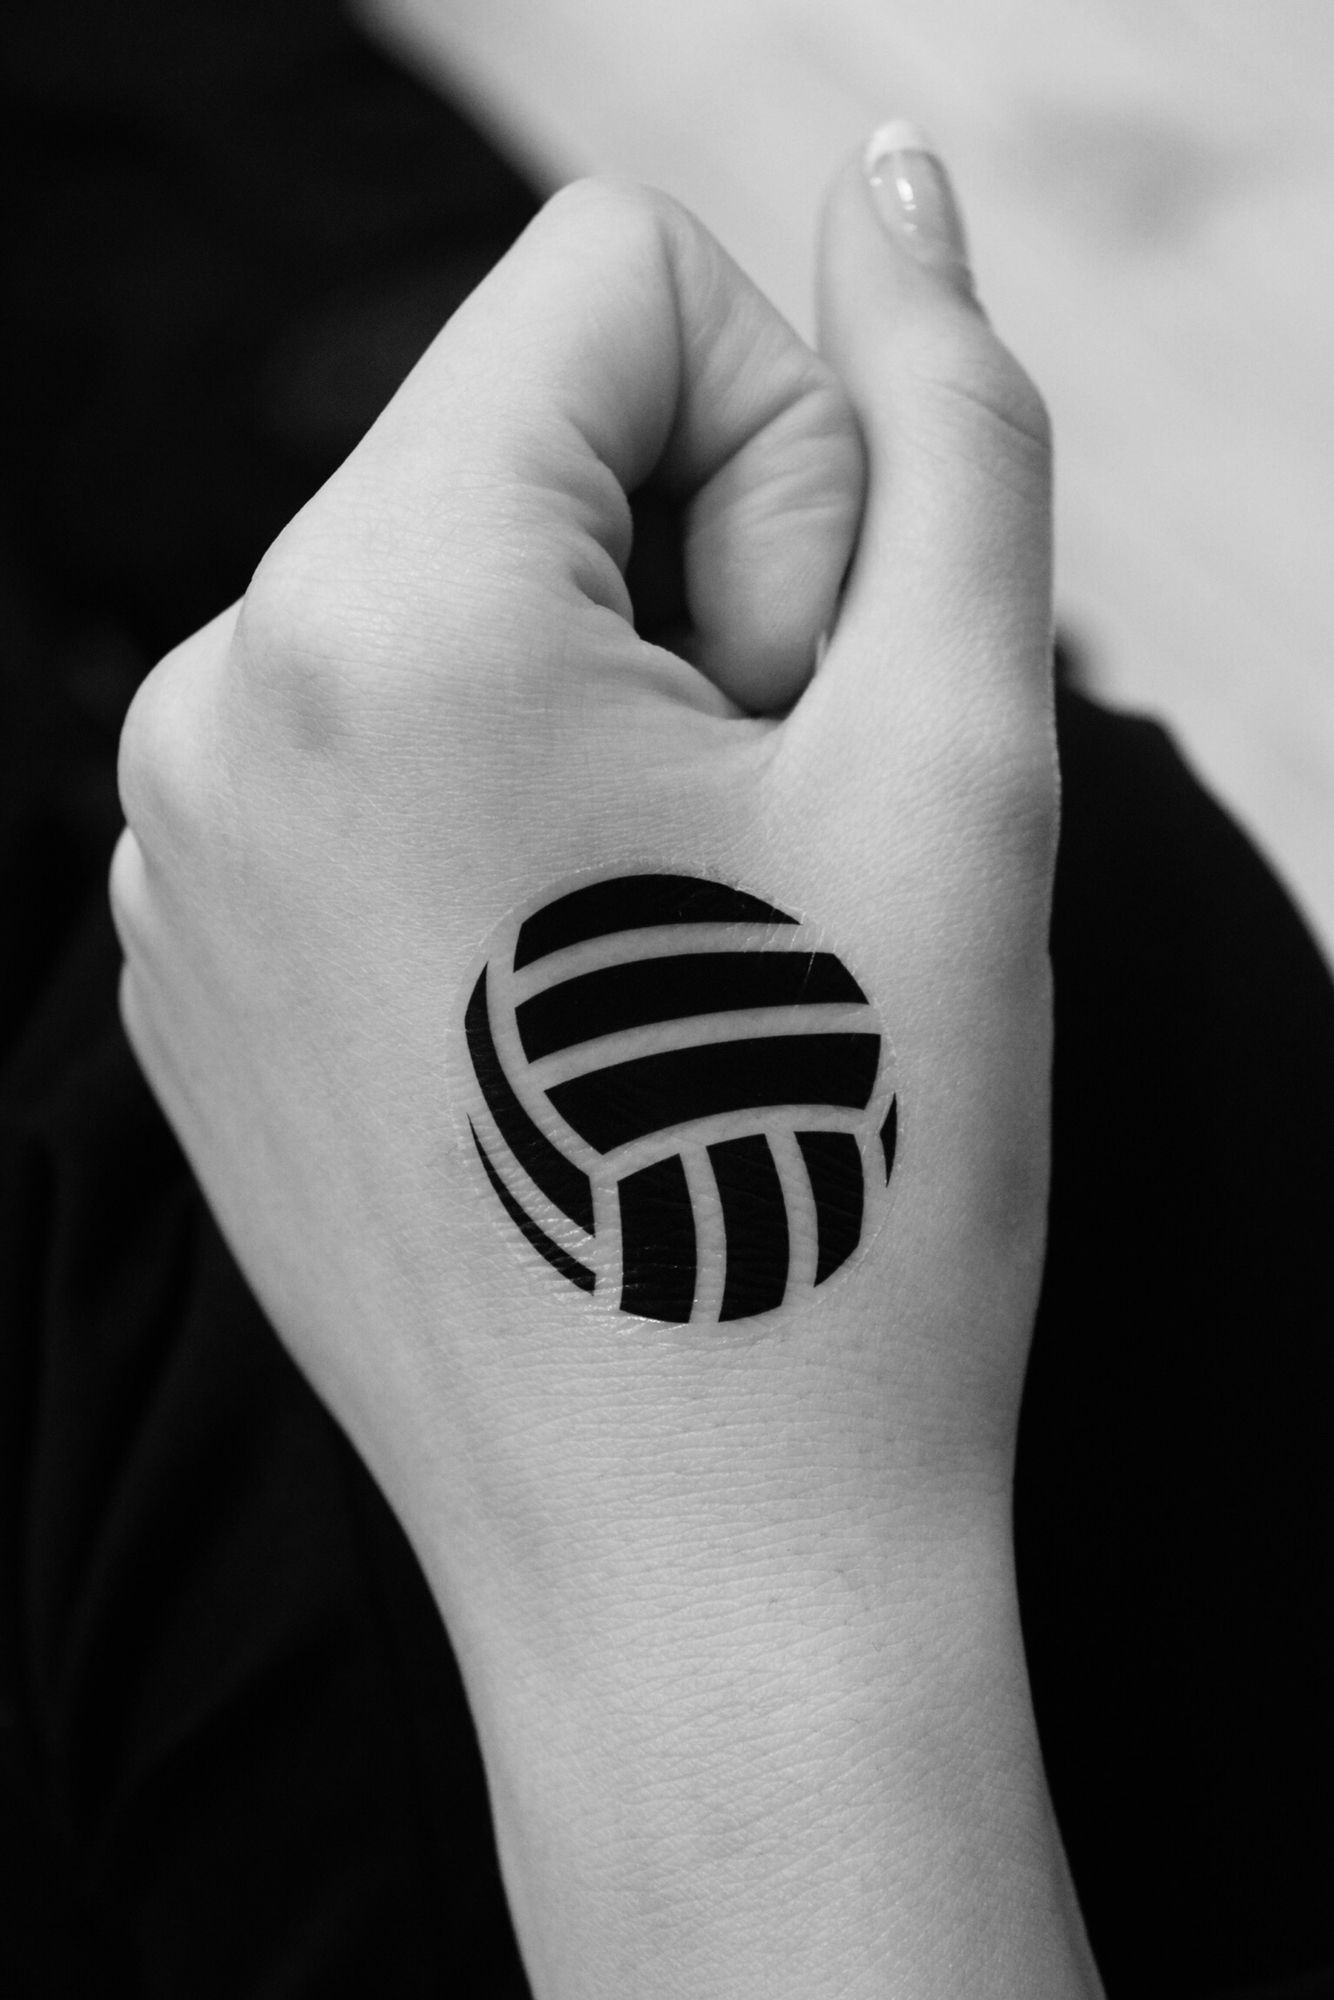 Temp volleyball tattoo that I made for the team